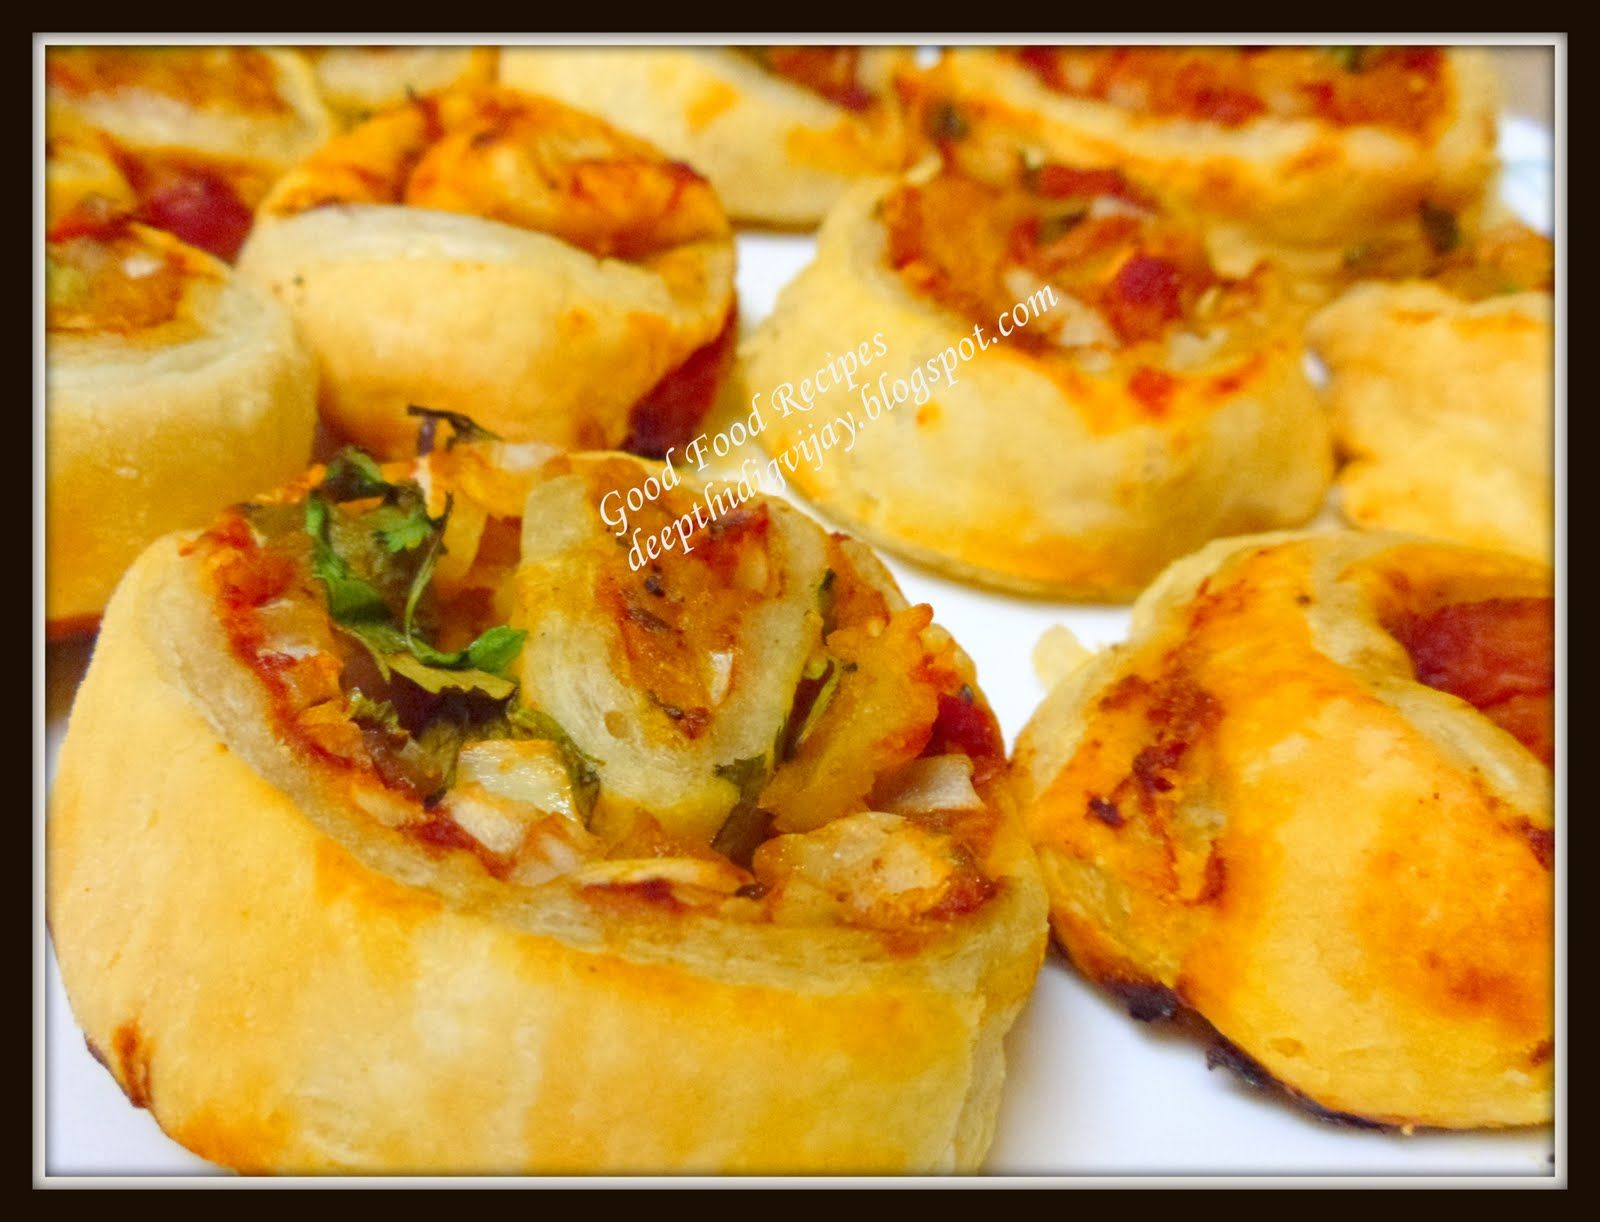 Good food recipes vegetable pastry pin wheels in indian style vegetable pastry pin wheels in indian style forumfinder Gallery